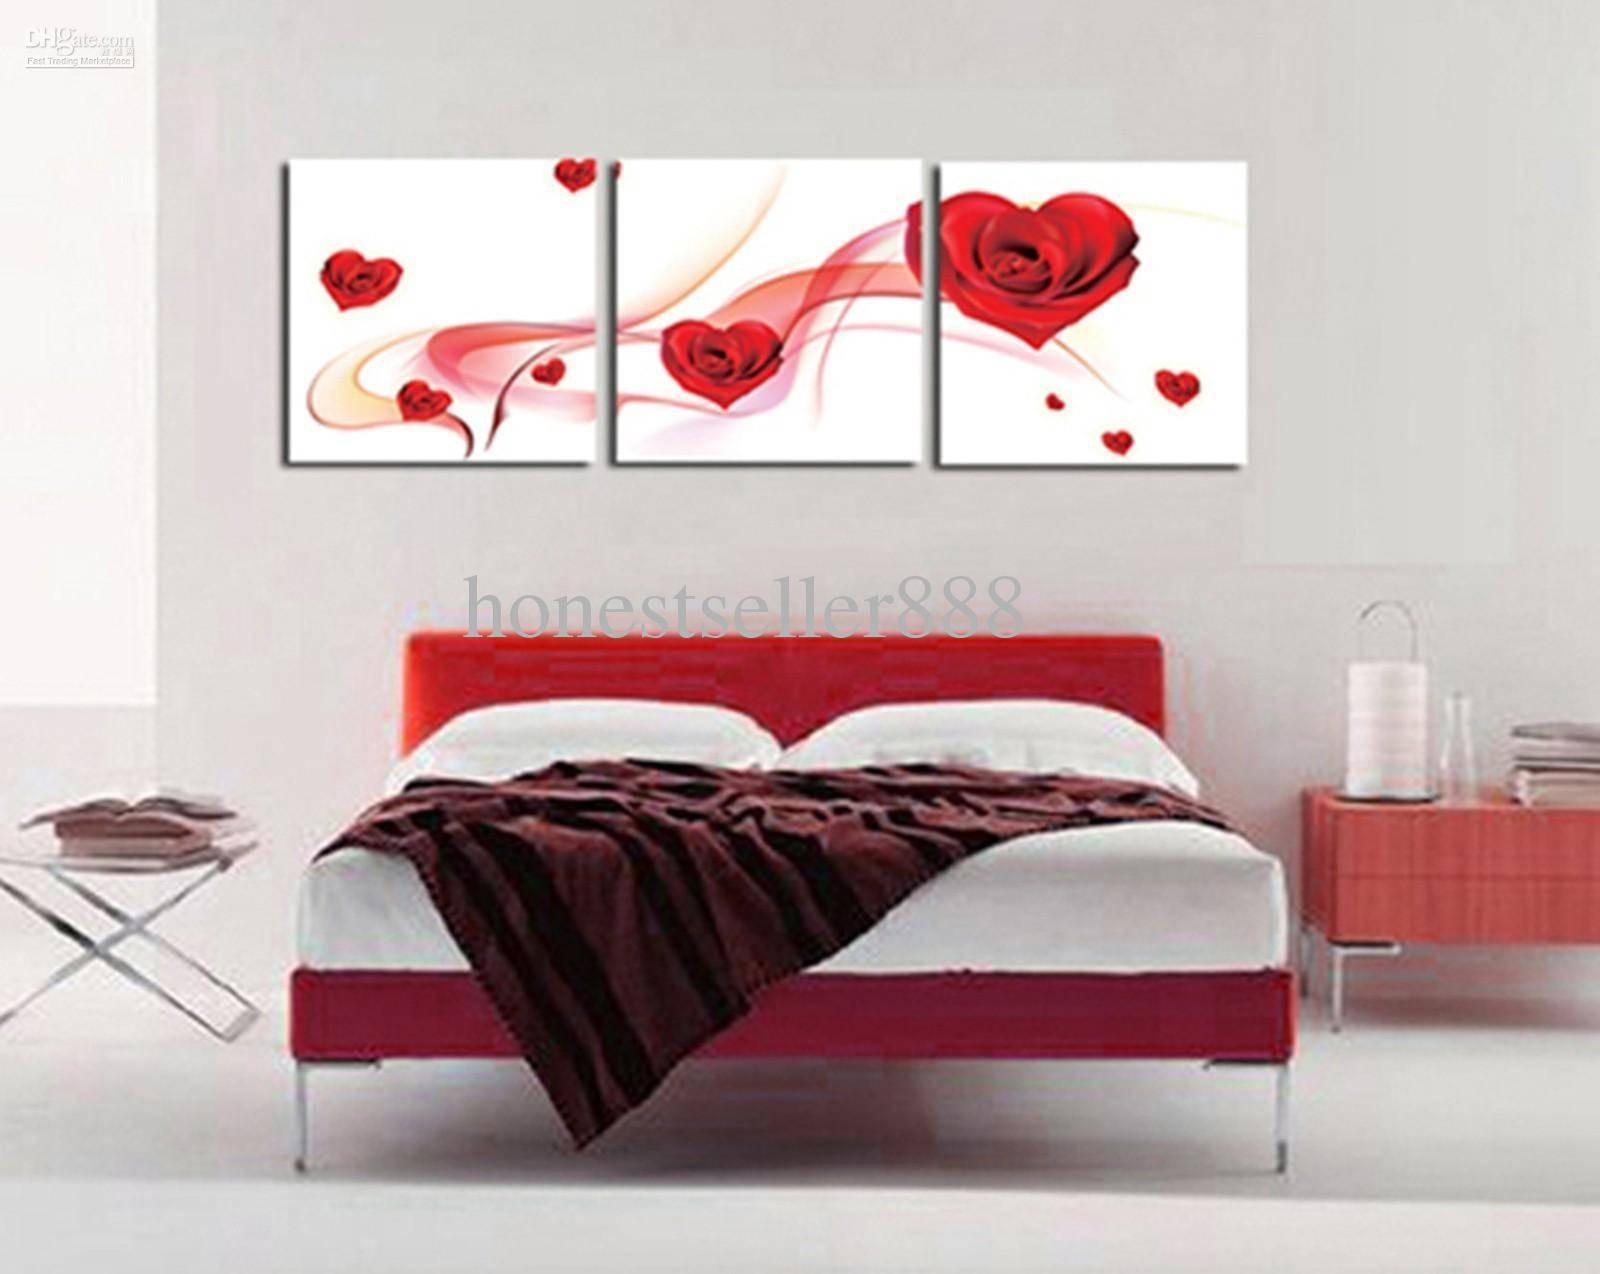 3D Wall Art Decorating Wallpaper Painting Inviting Metal Decor Inside Most Current Bedroom 3D Wall Art (View 3 of 20)